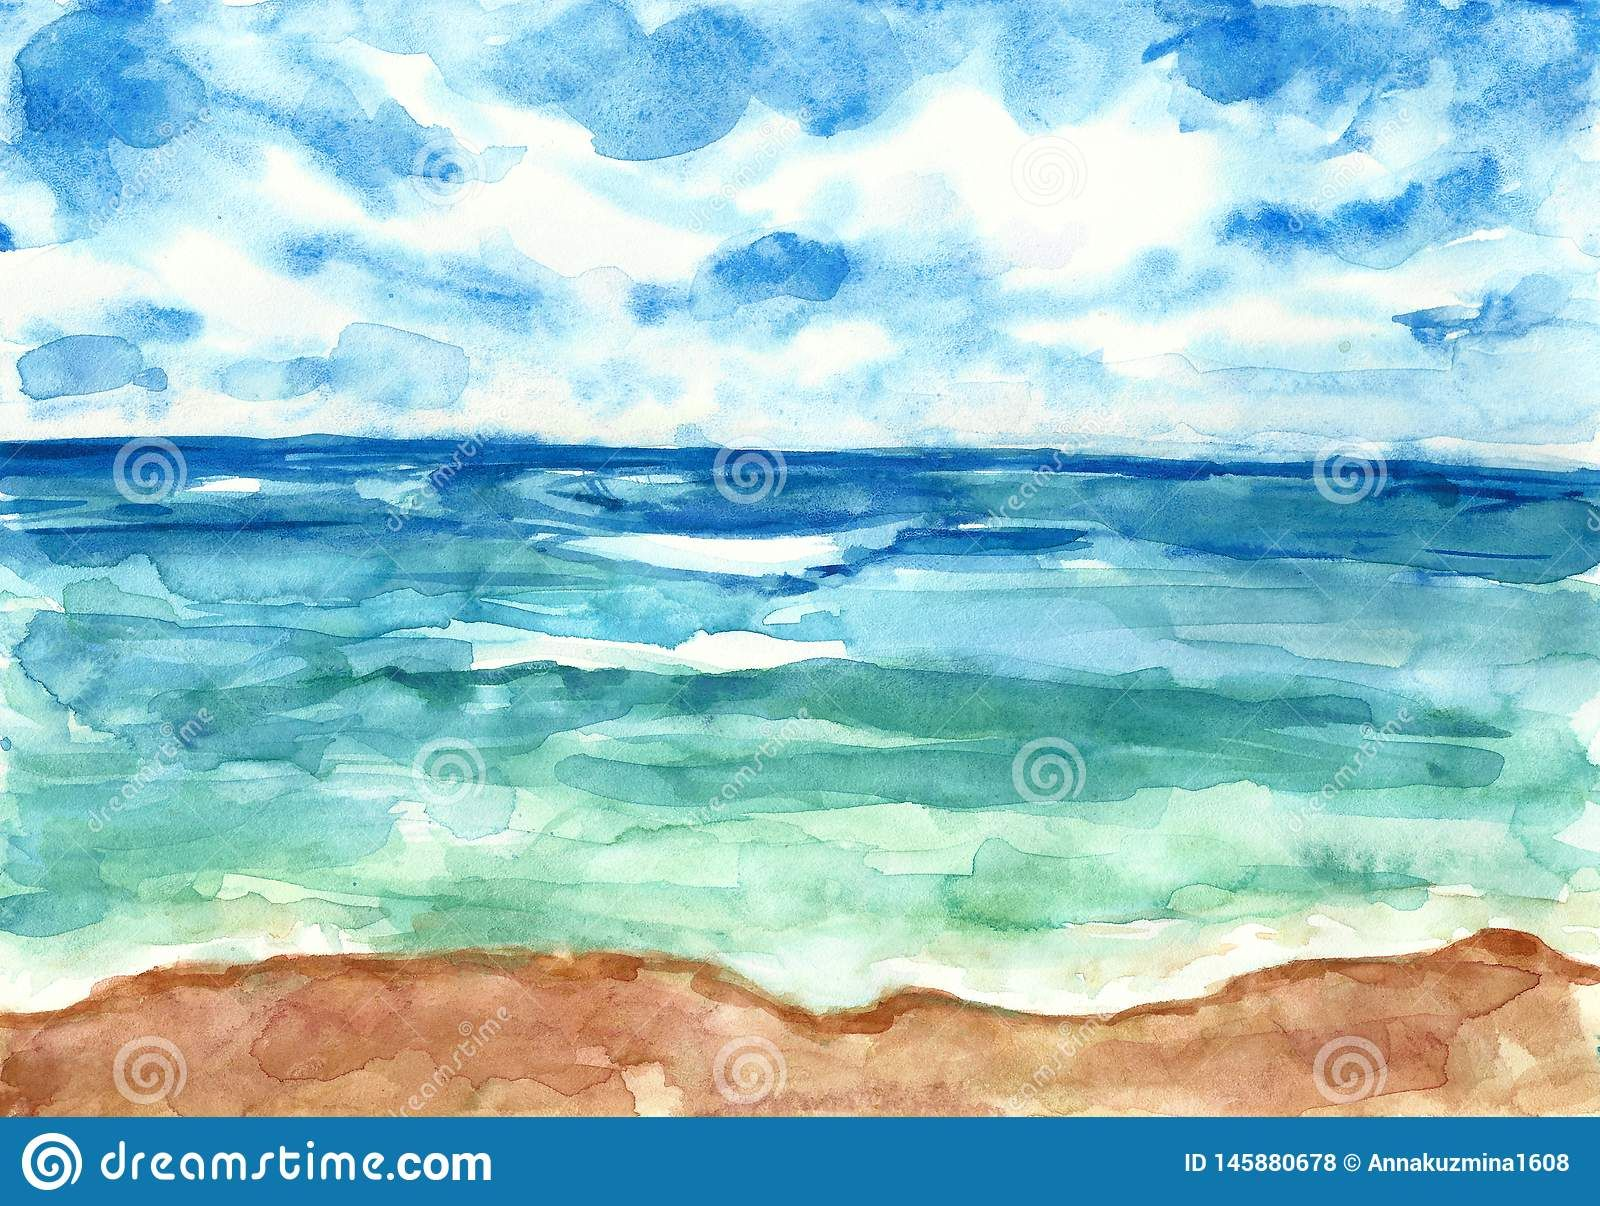 Illustration About Watercolor Sea And Summer Beach Landscape